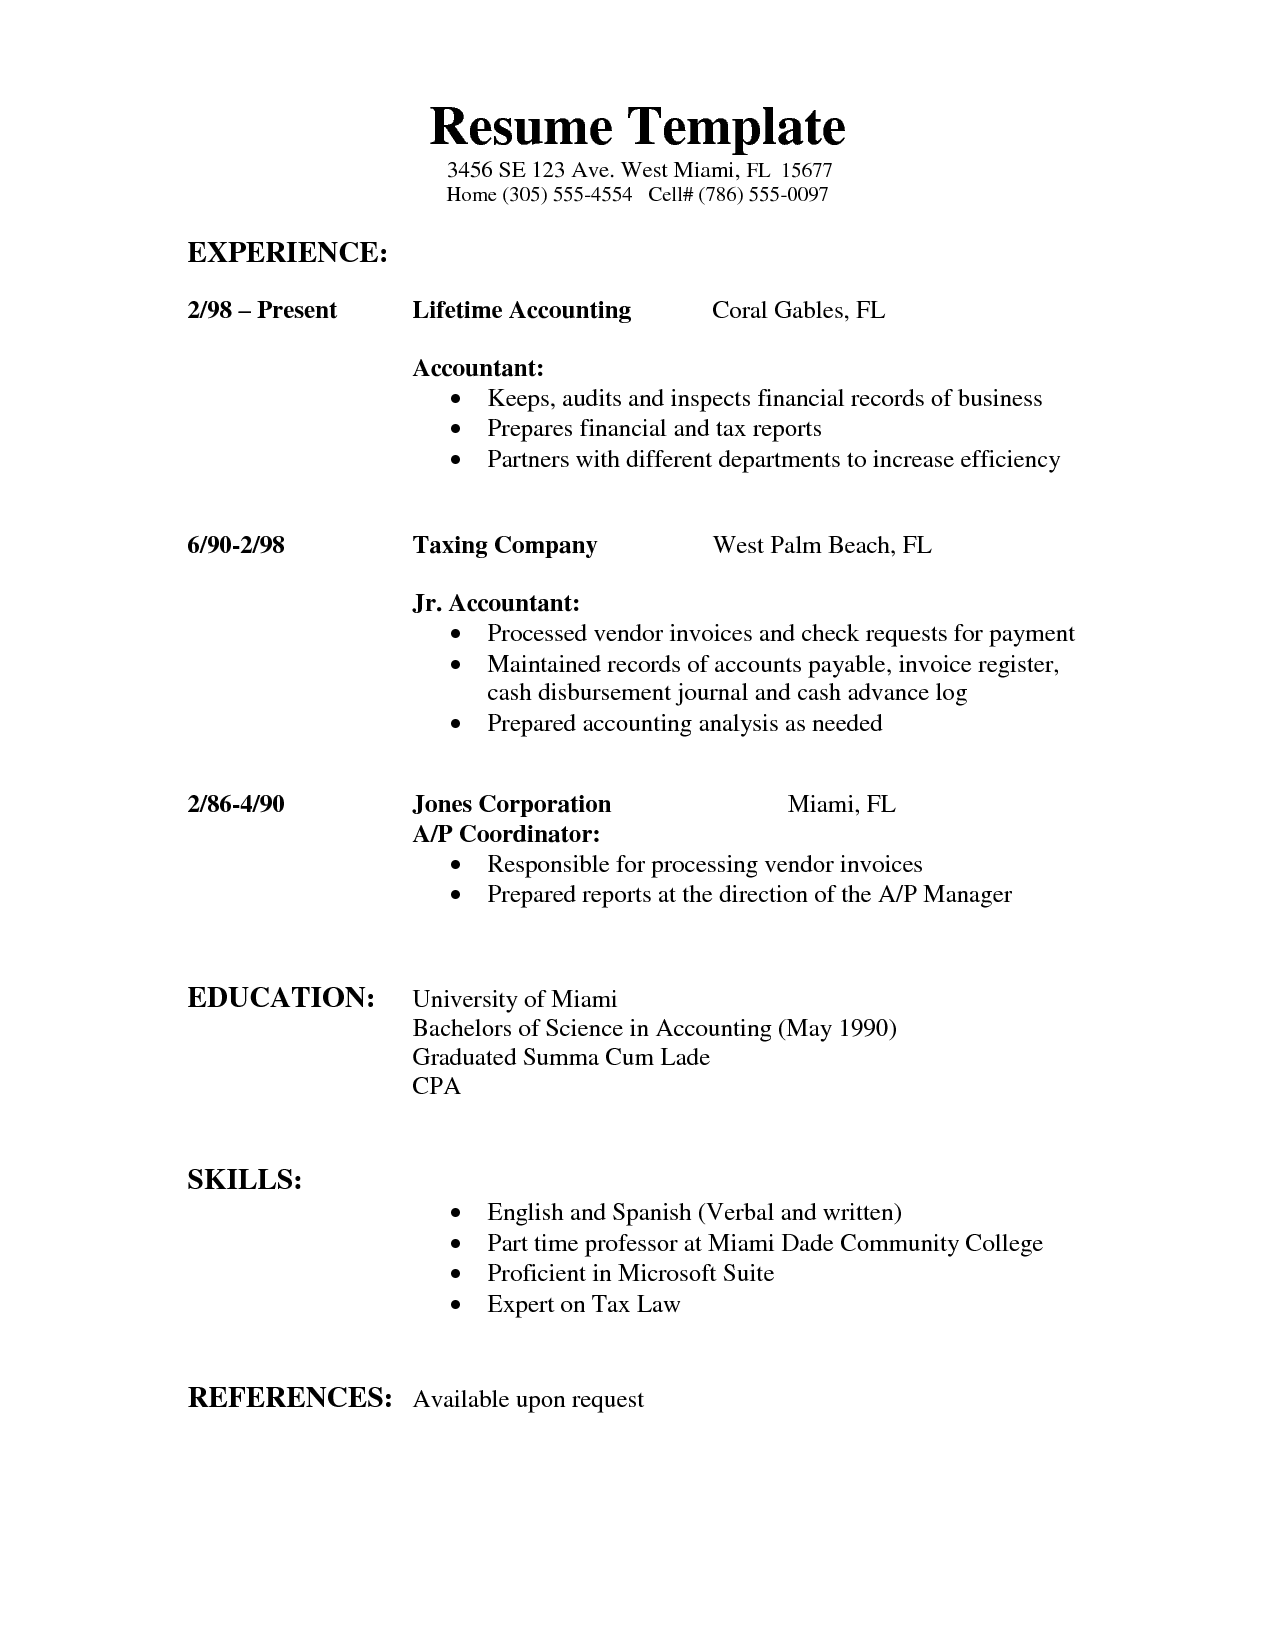 Resumes Resume Examples Projects To Try Pinterest Resume